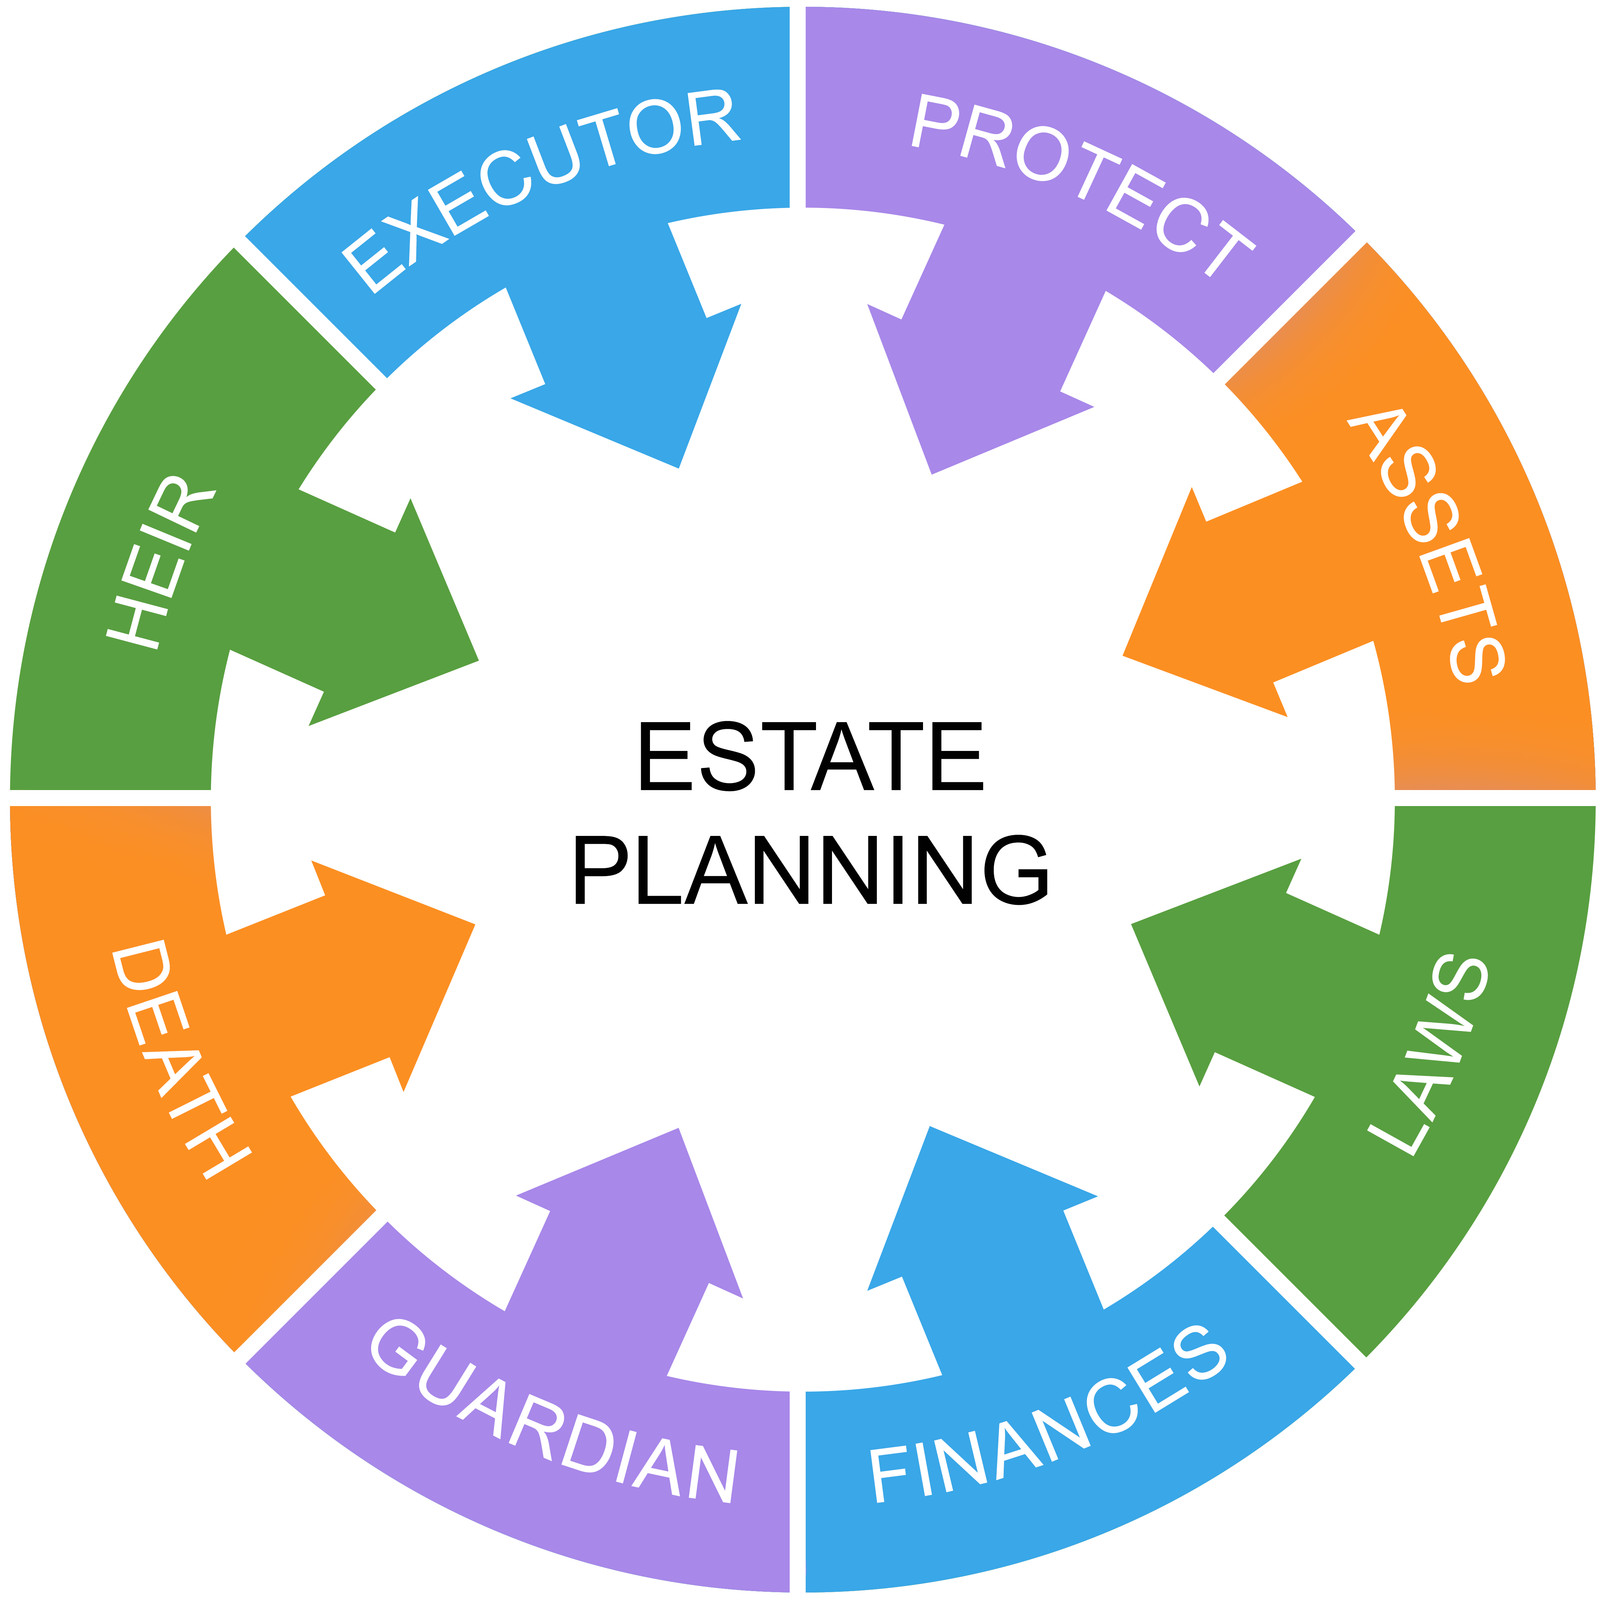 A List Of Common Estate Planning Goals - Estate planning template